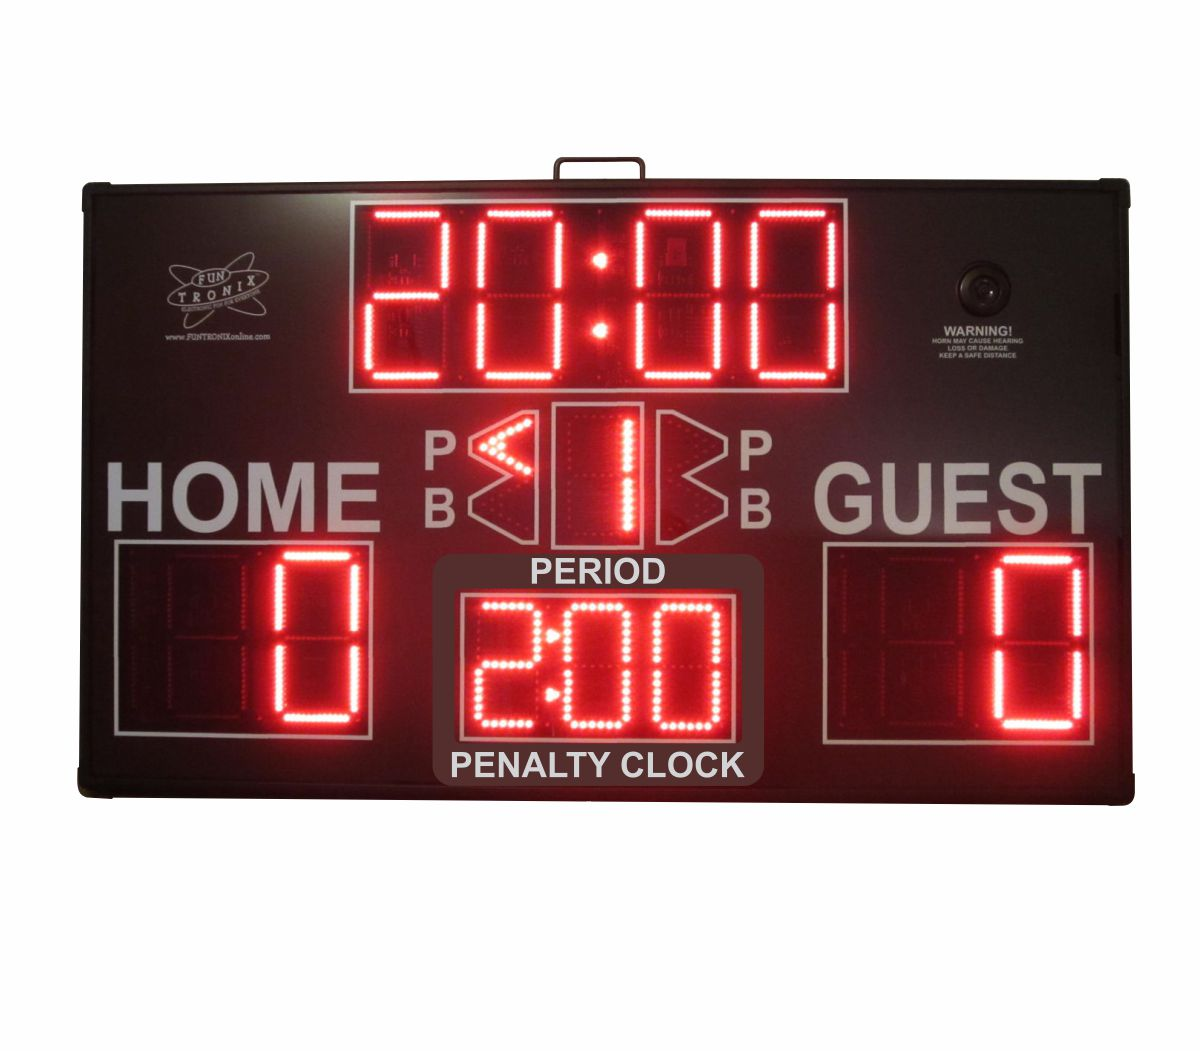 SNT-800M ultra large portable scoreboard penalty clock